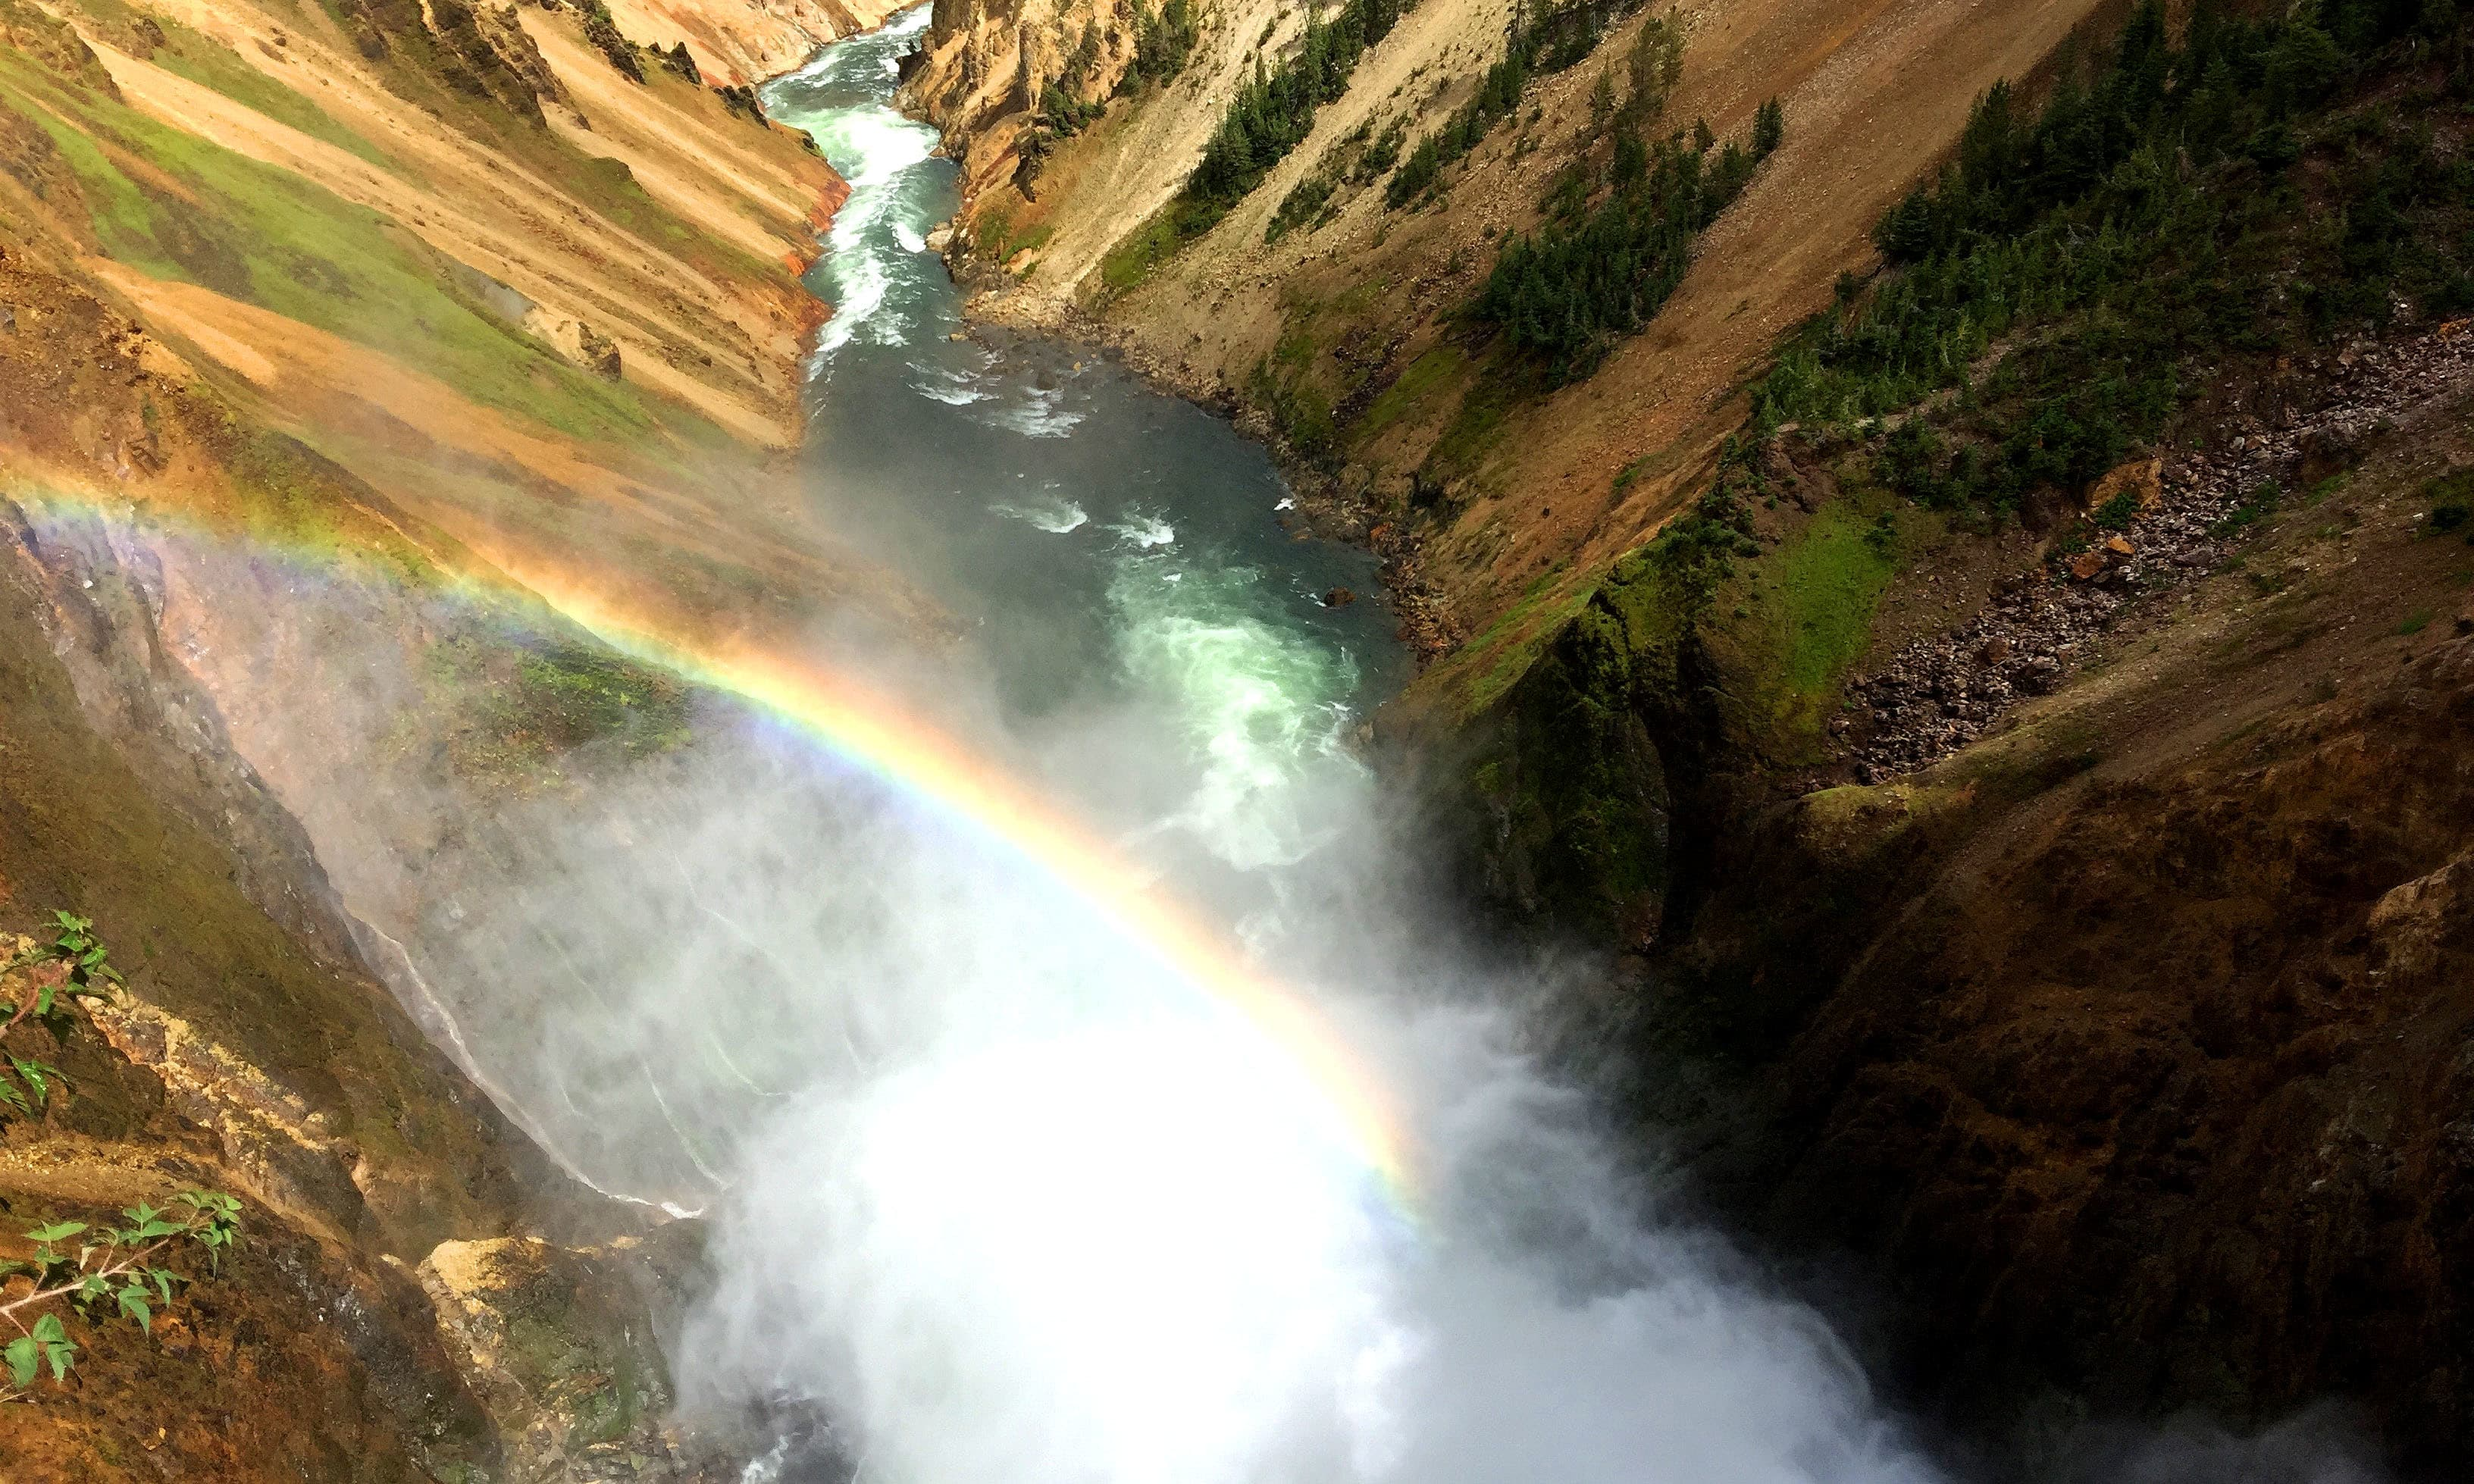 Upper Falls with a rainbow. —Hassan Majeed